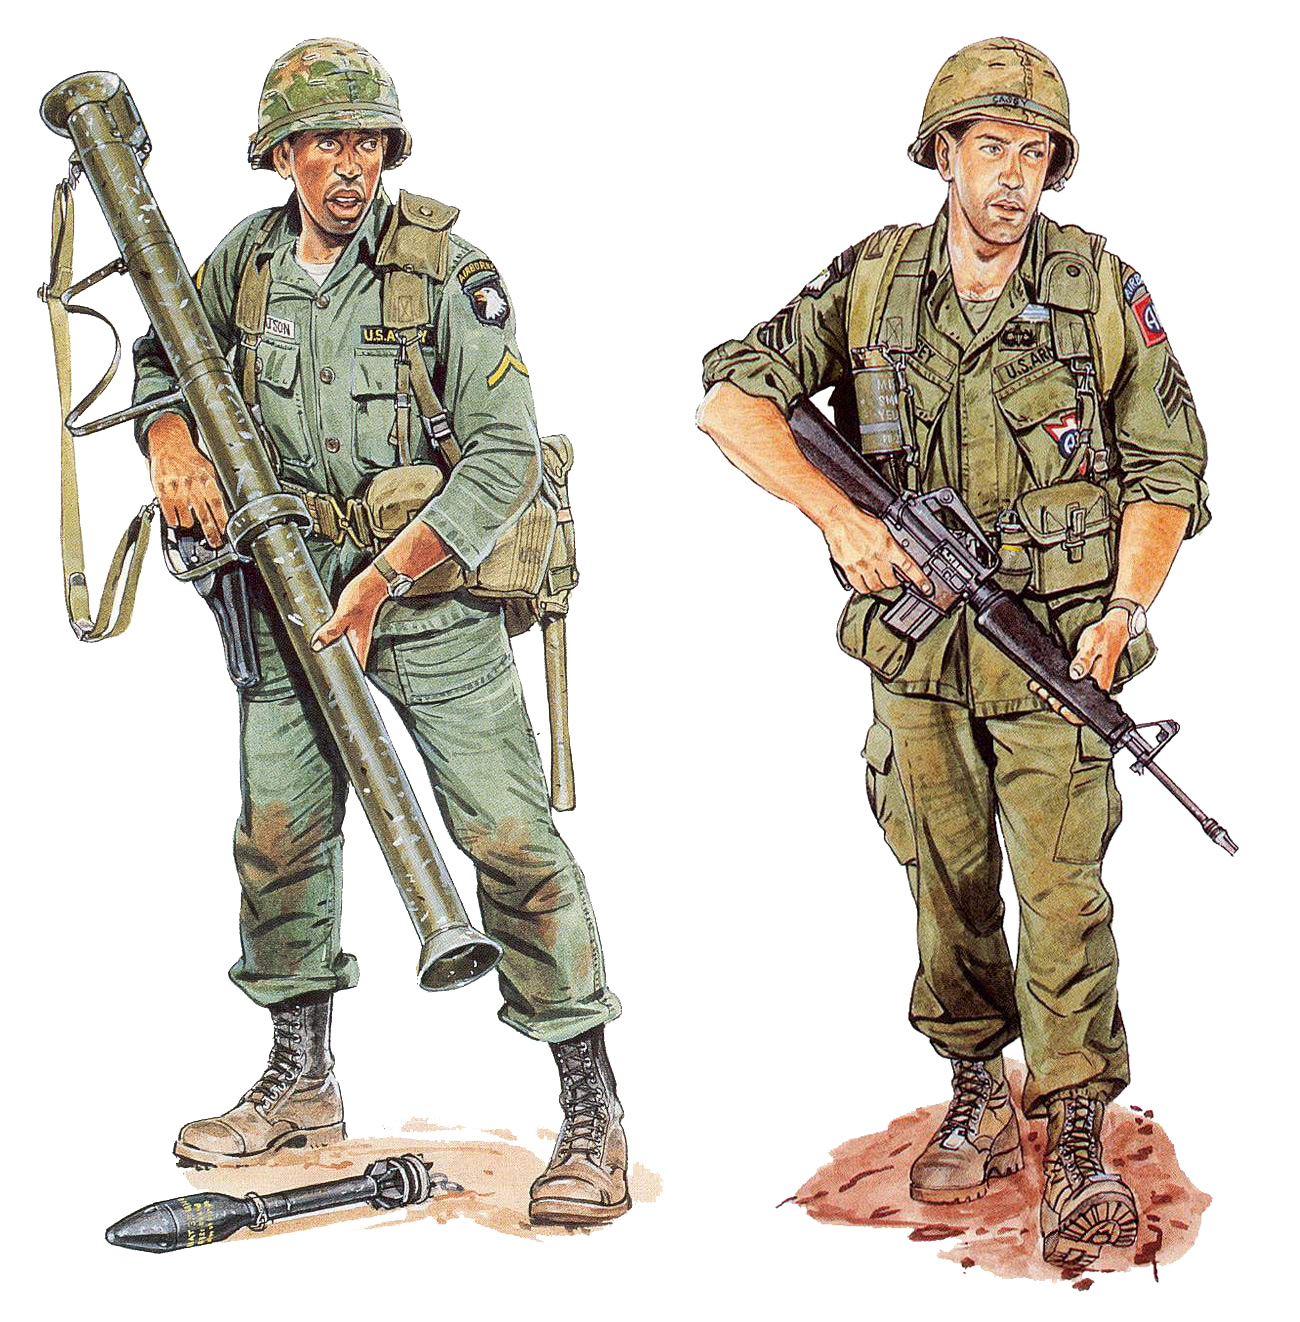 us_army_uniforms.jpg